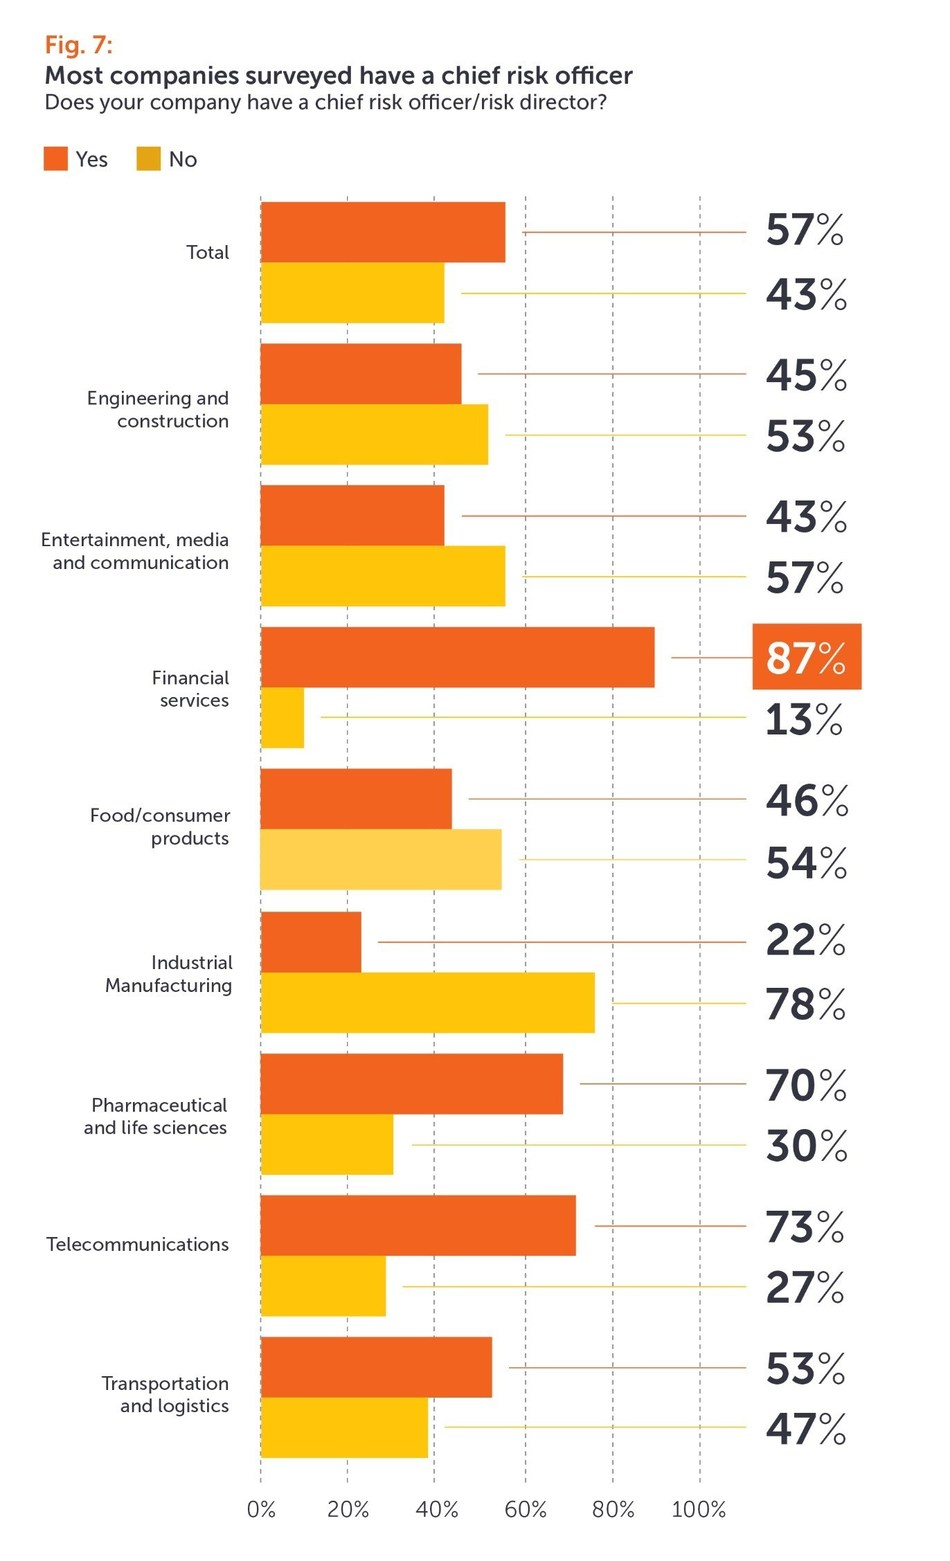 Fig.7: Most companies surveyed have a chief risk officer. (PRNewsfoto/Eversheds Sutherland)